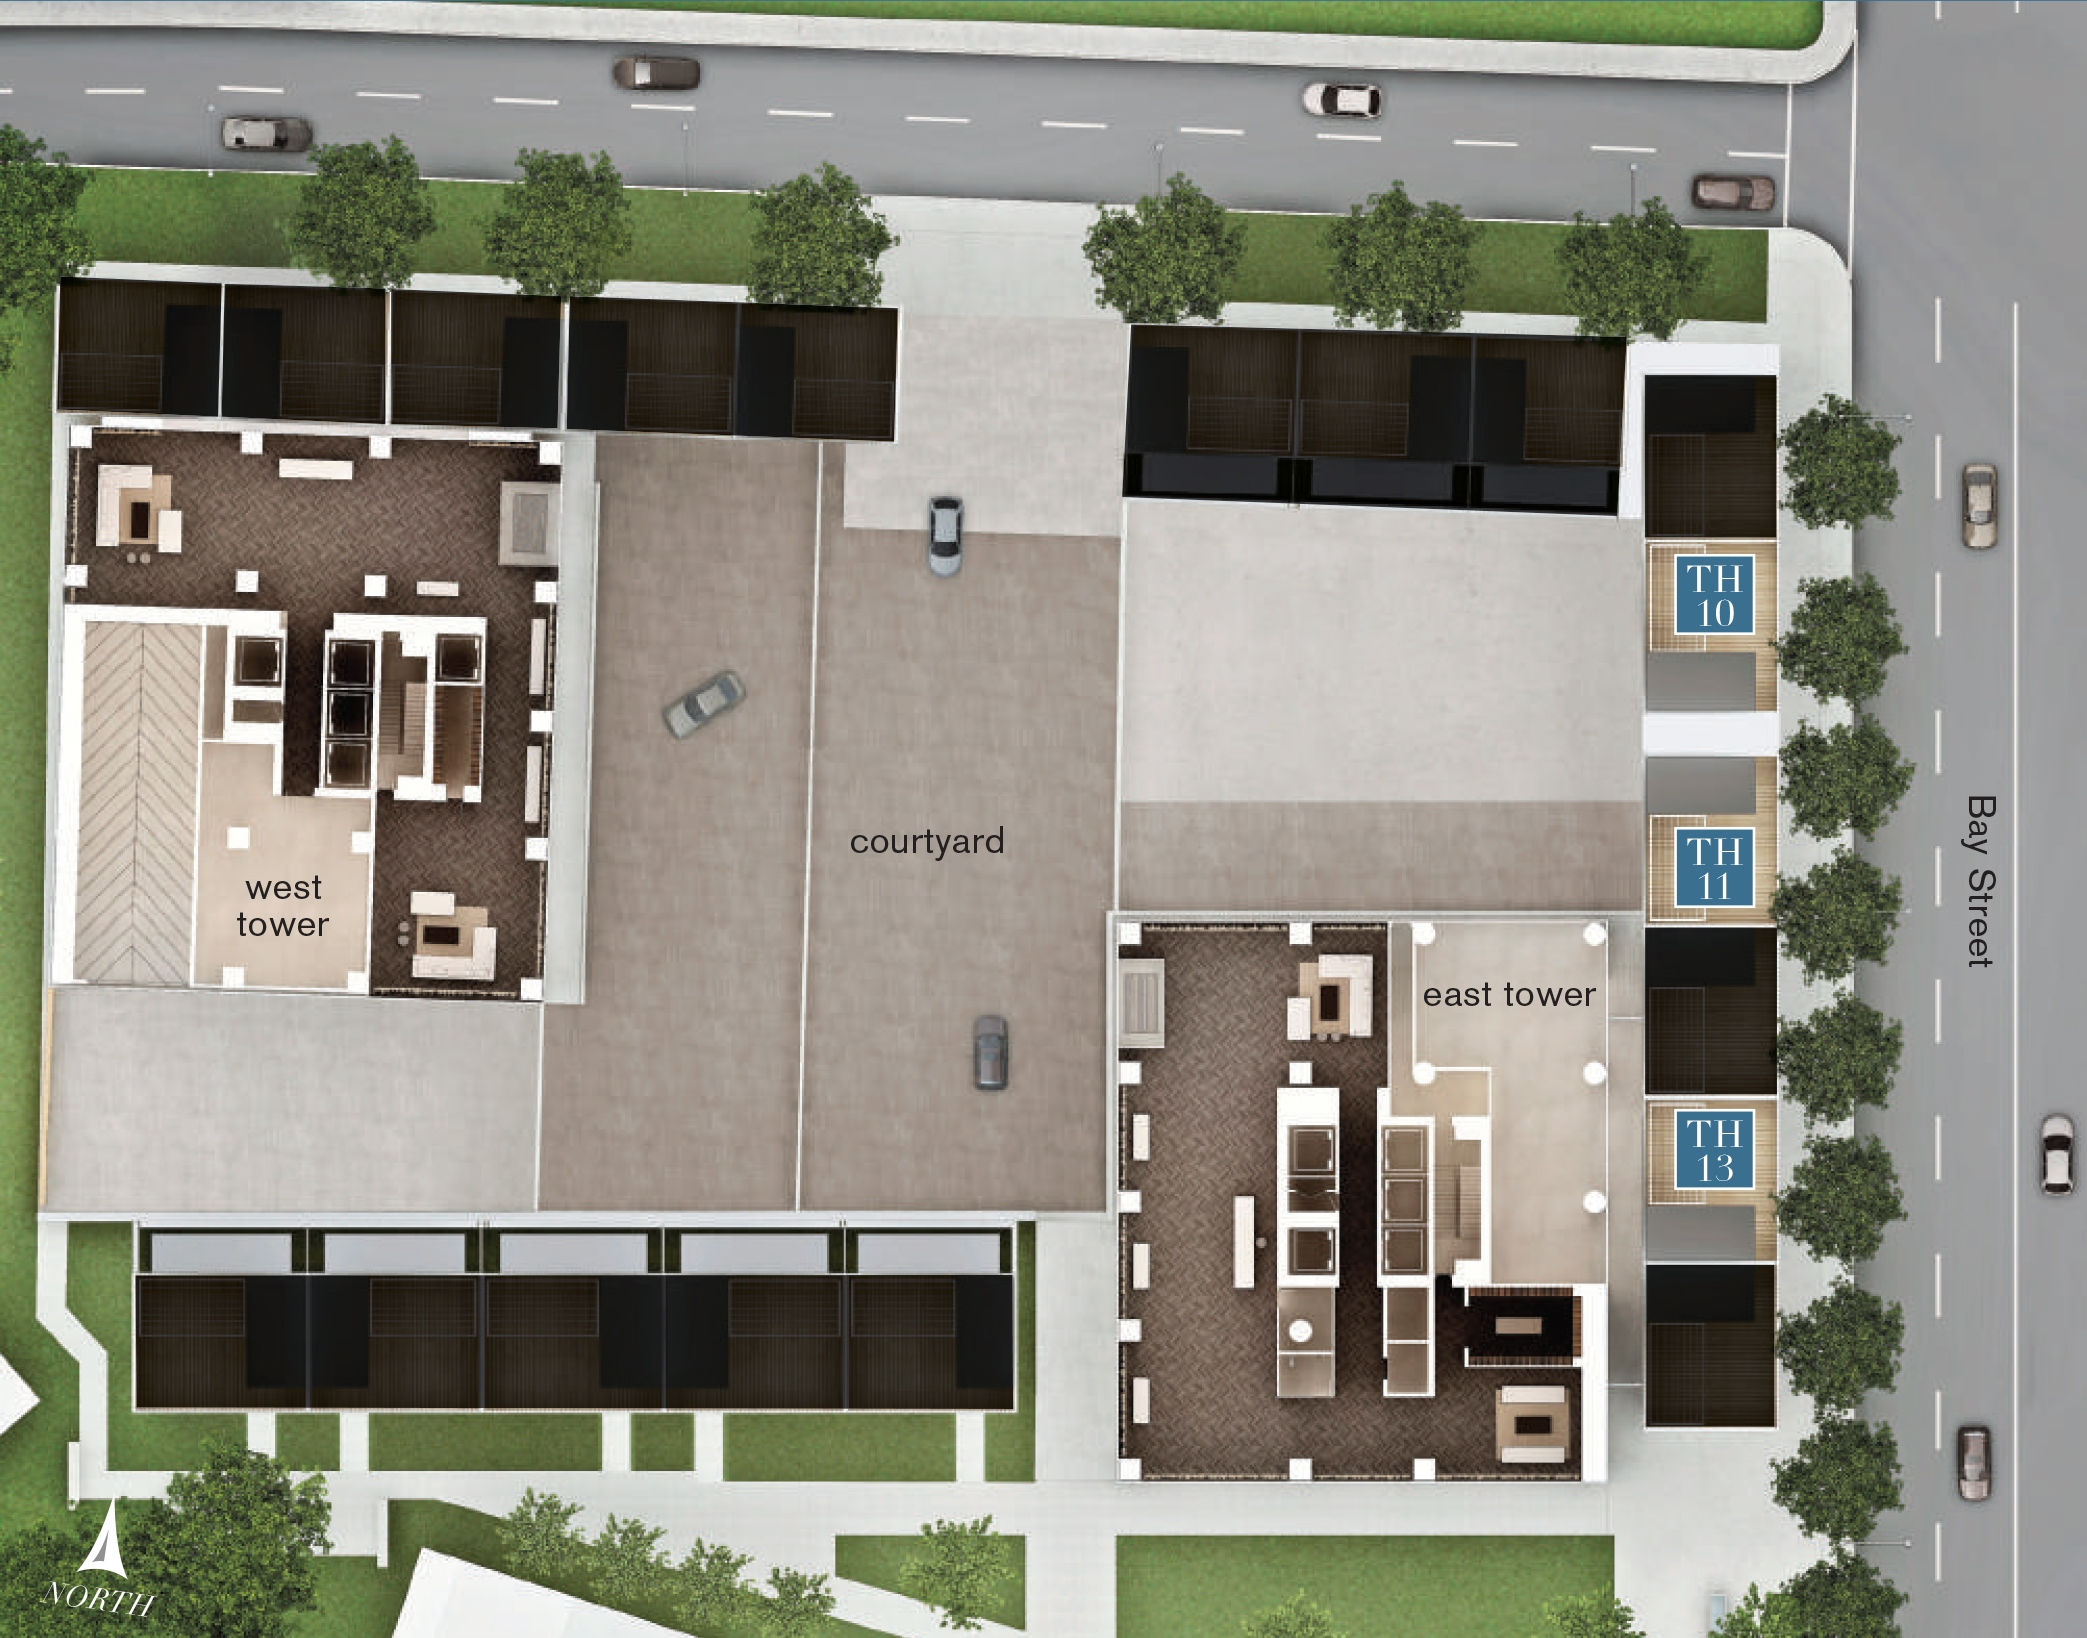 Site plan for The Urban Townhome Collection in Toronto, Ontario